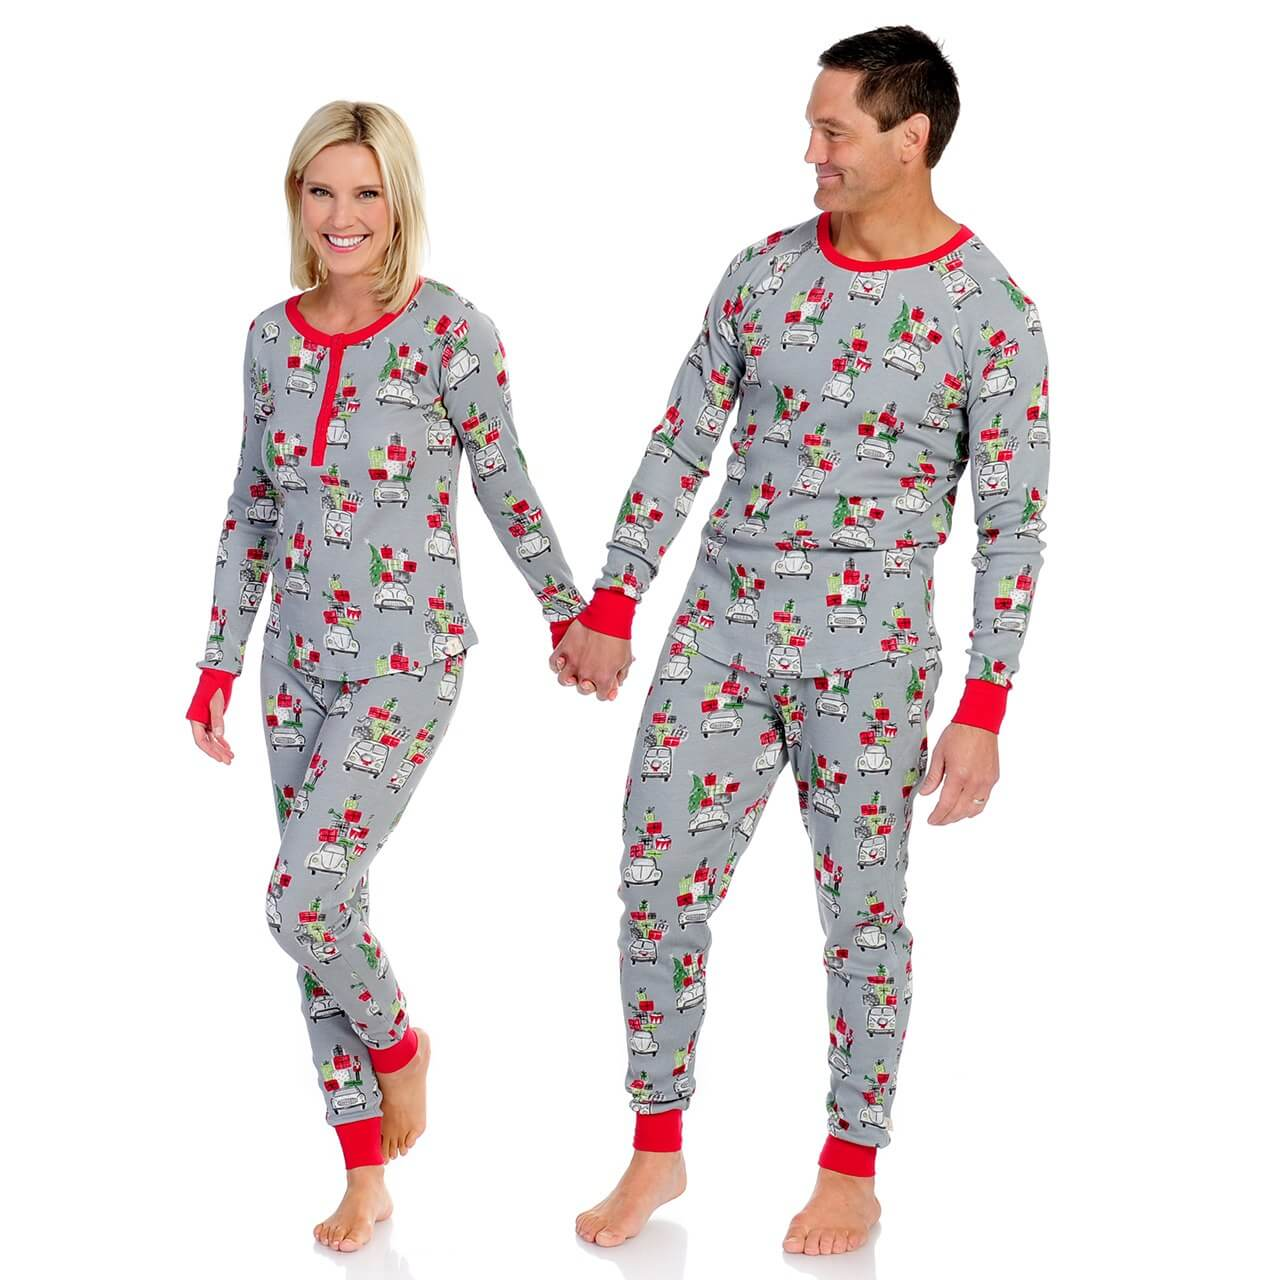 Matching couples pajamas